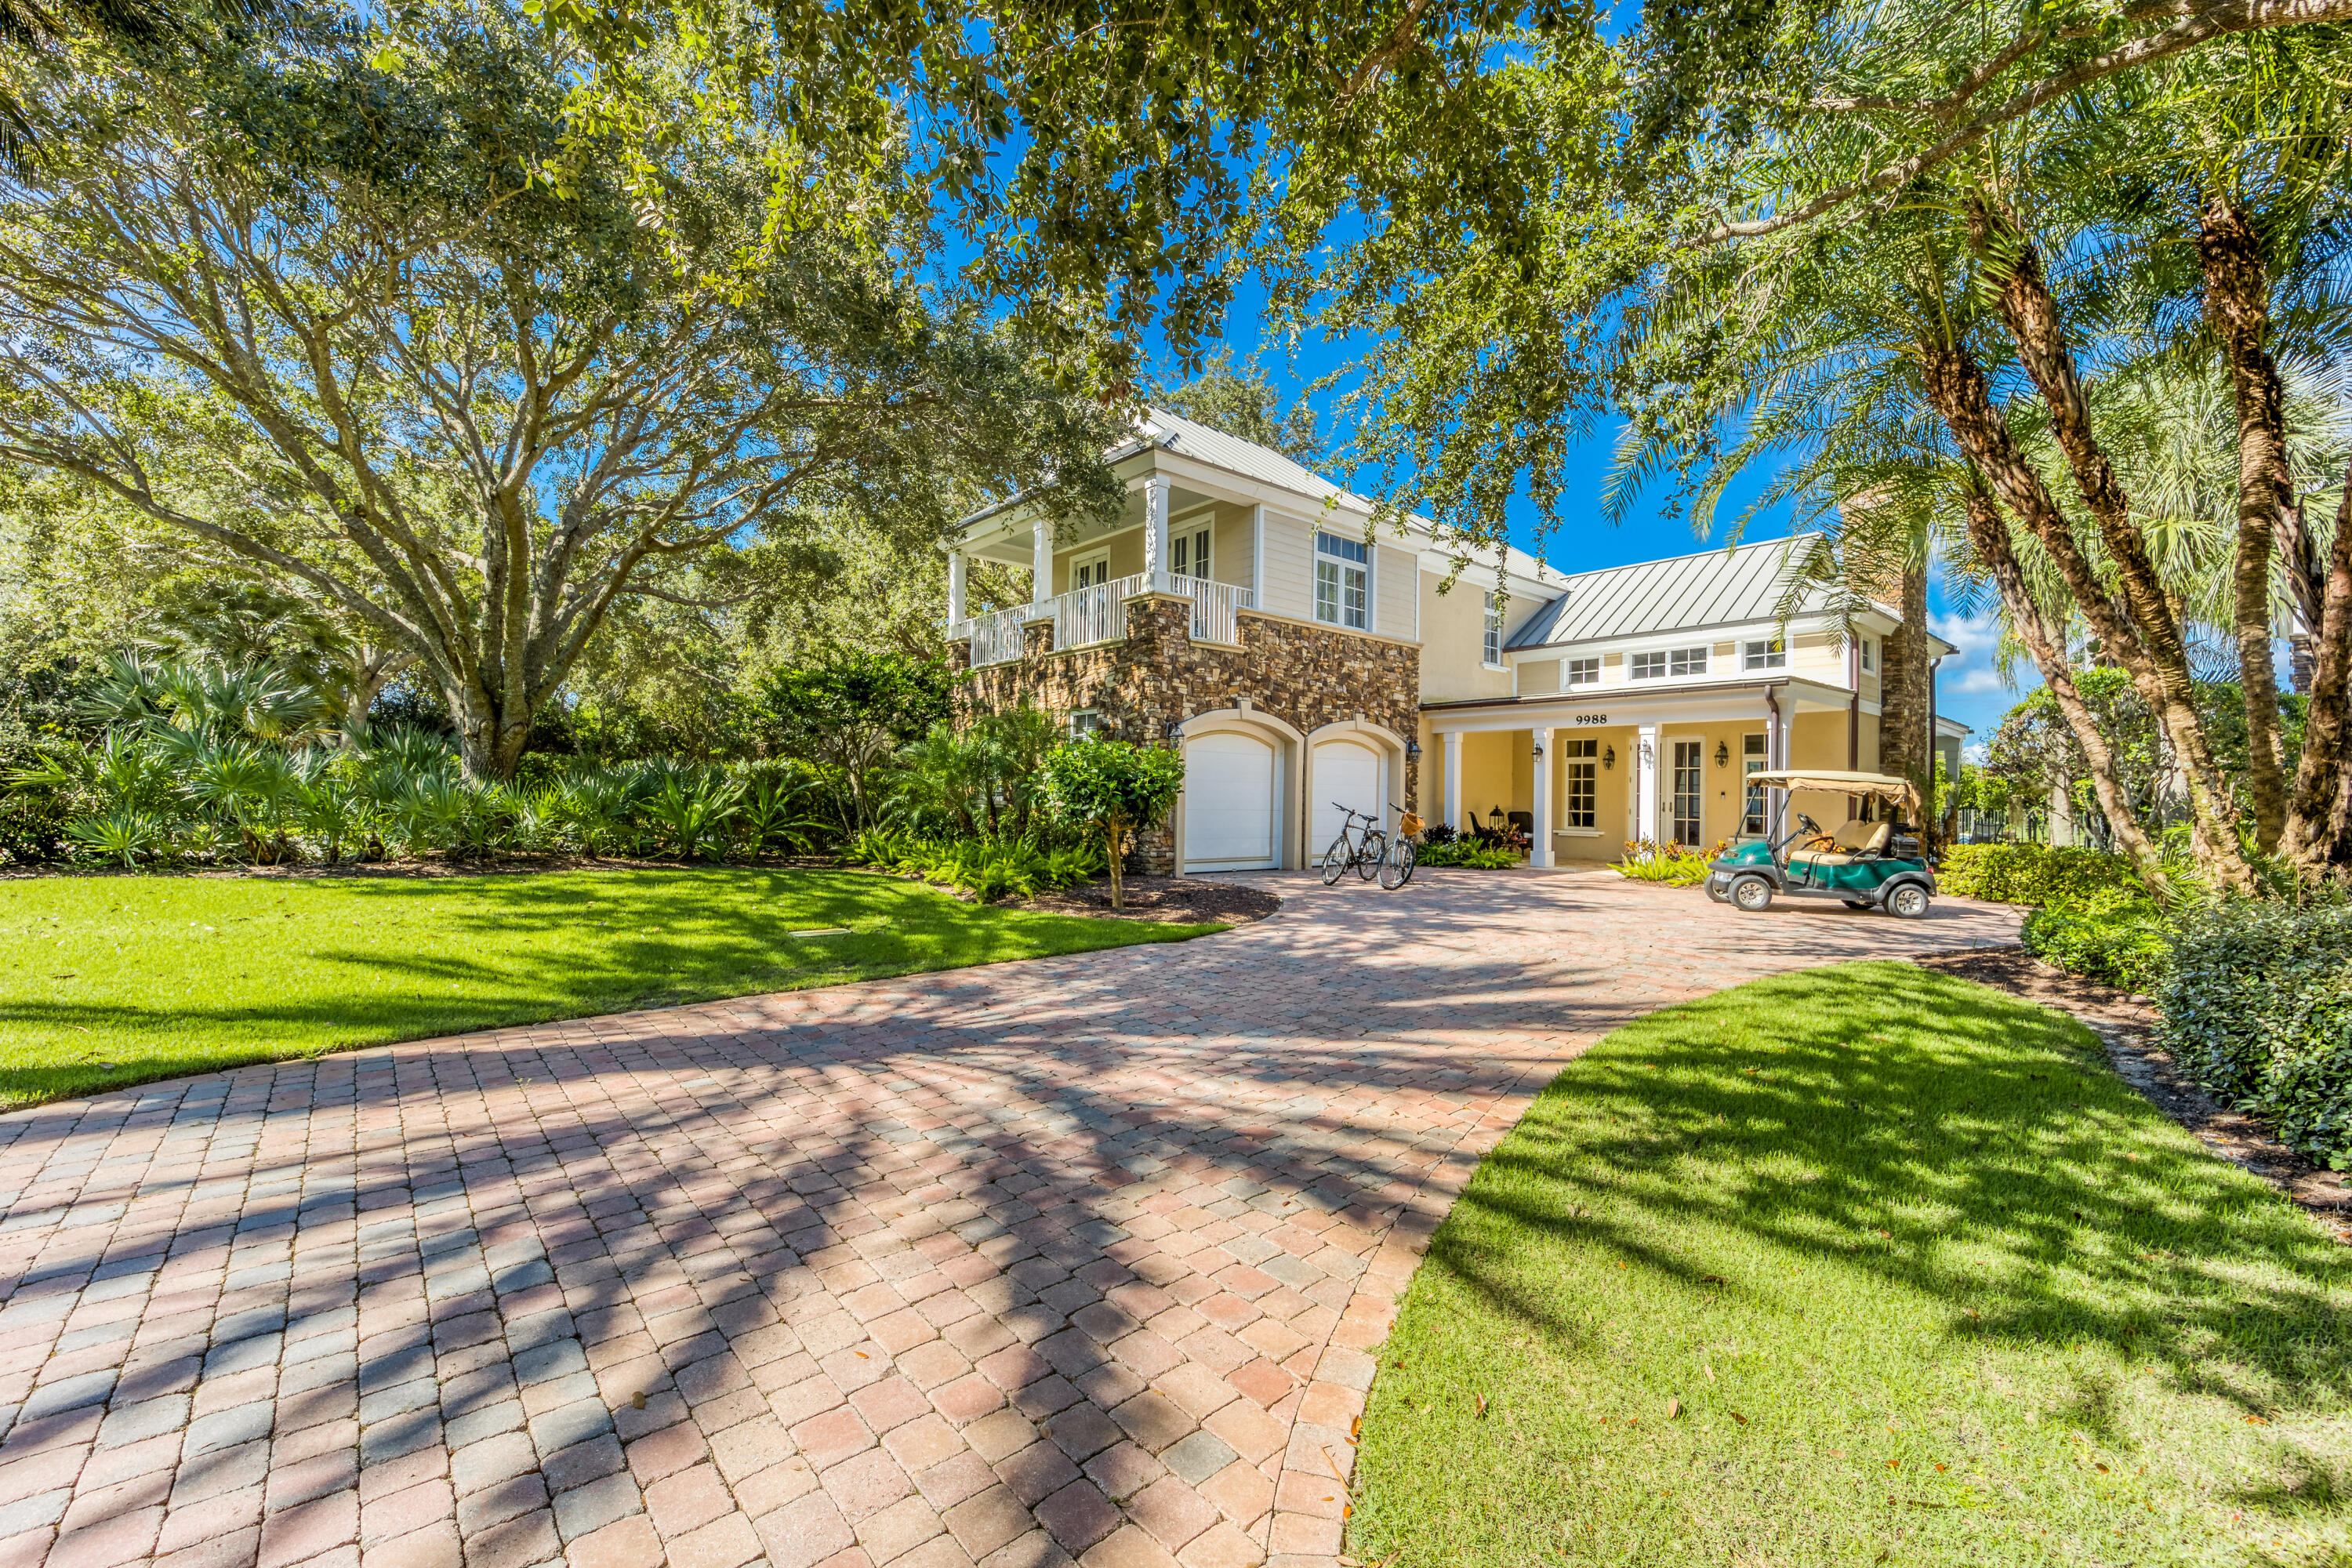 9988 Cottage Lane, Hobe Sound, Florida 33455, 3 Bedrooms Bedrooms, ,3.1 BathroomsBathrooms,A,Single family,Cottage,RX-10739183